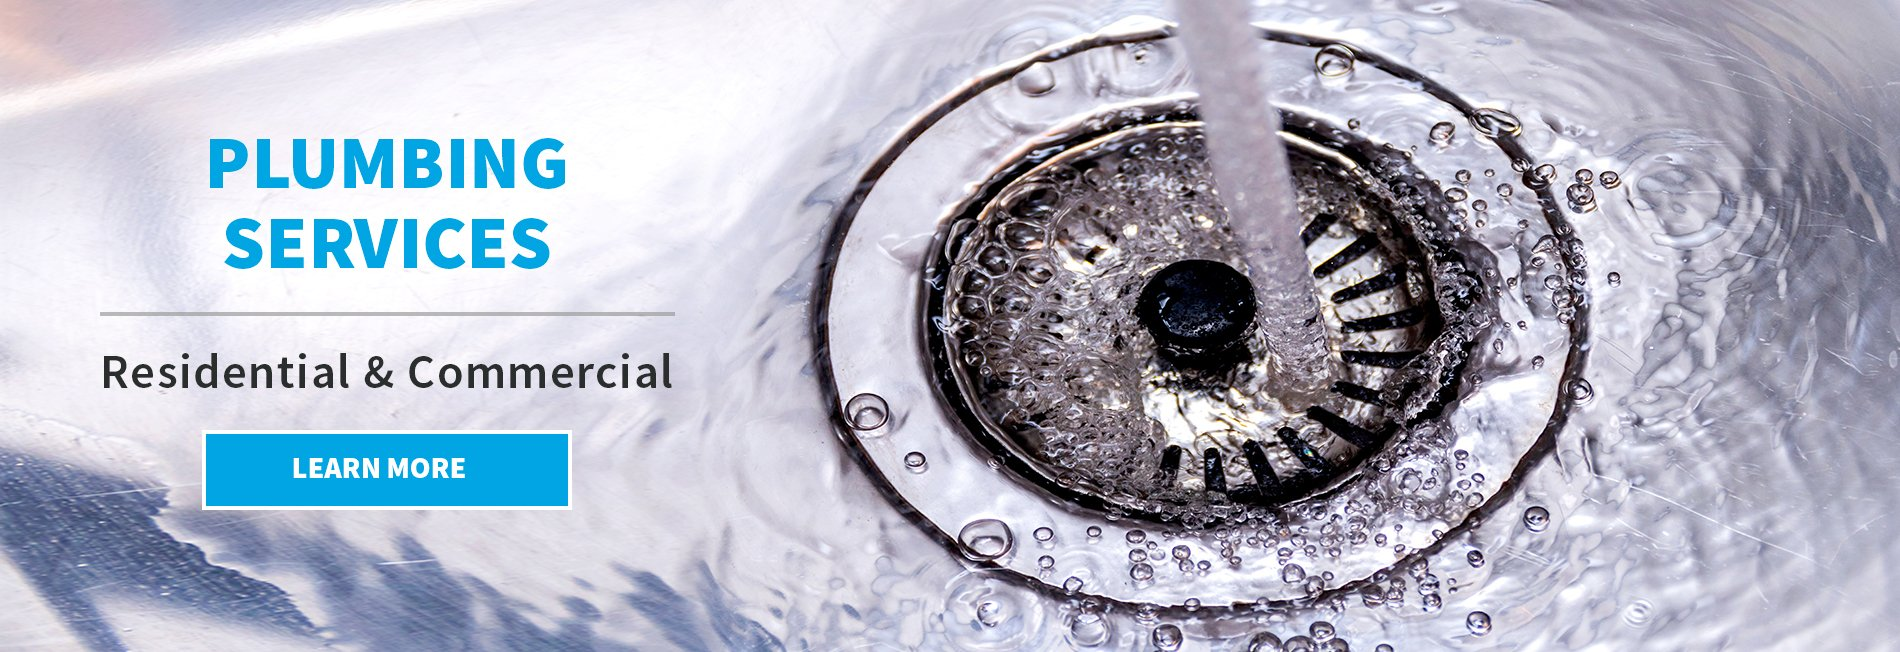 Aquality Residential & Commercial Plumbing Services